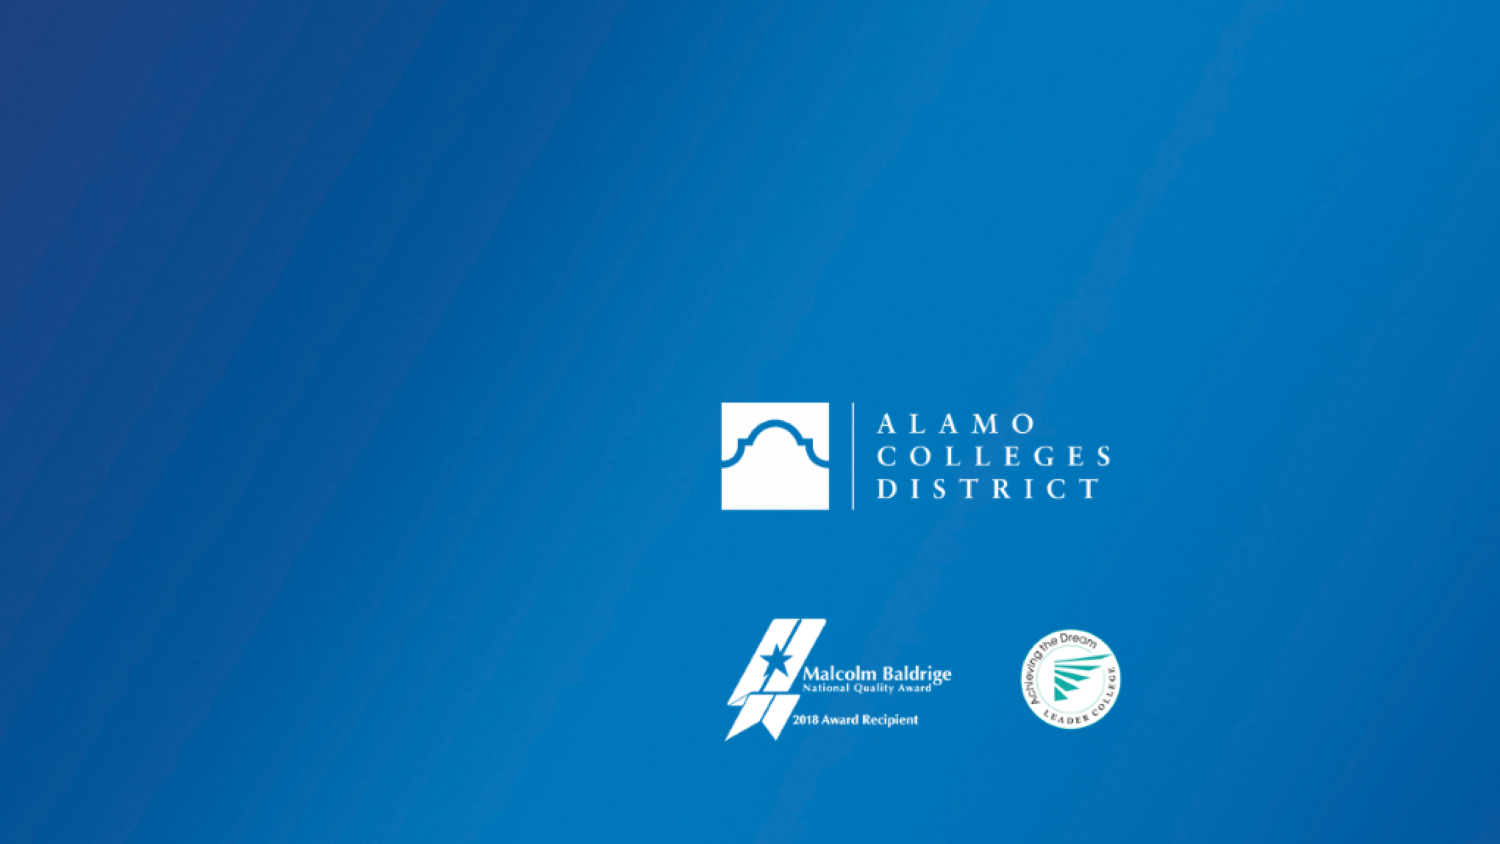 Alamo Colleges District PowerPoint Template